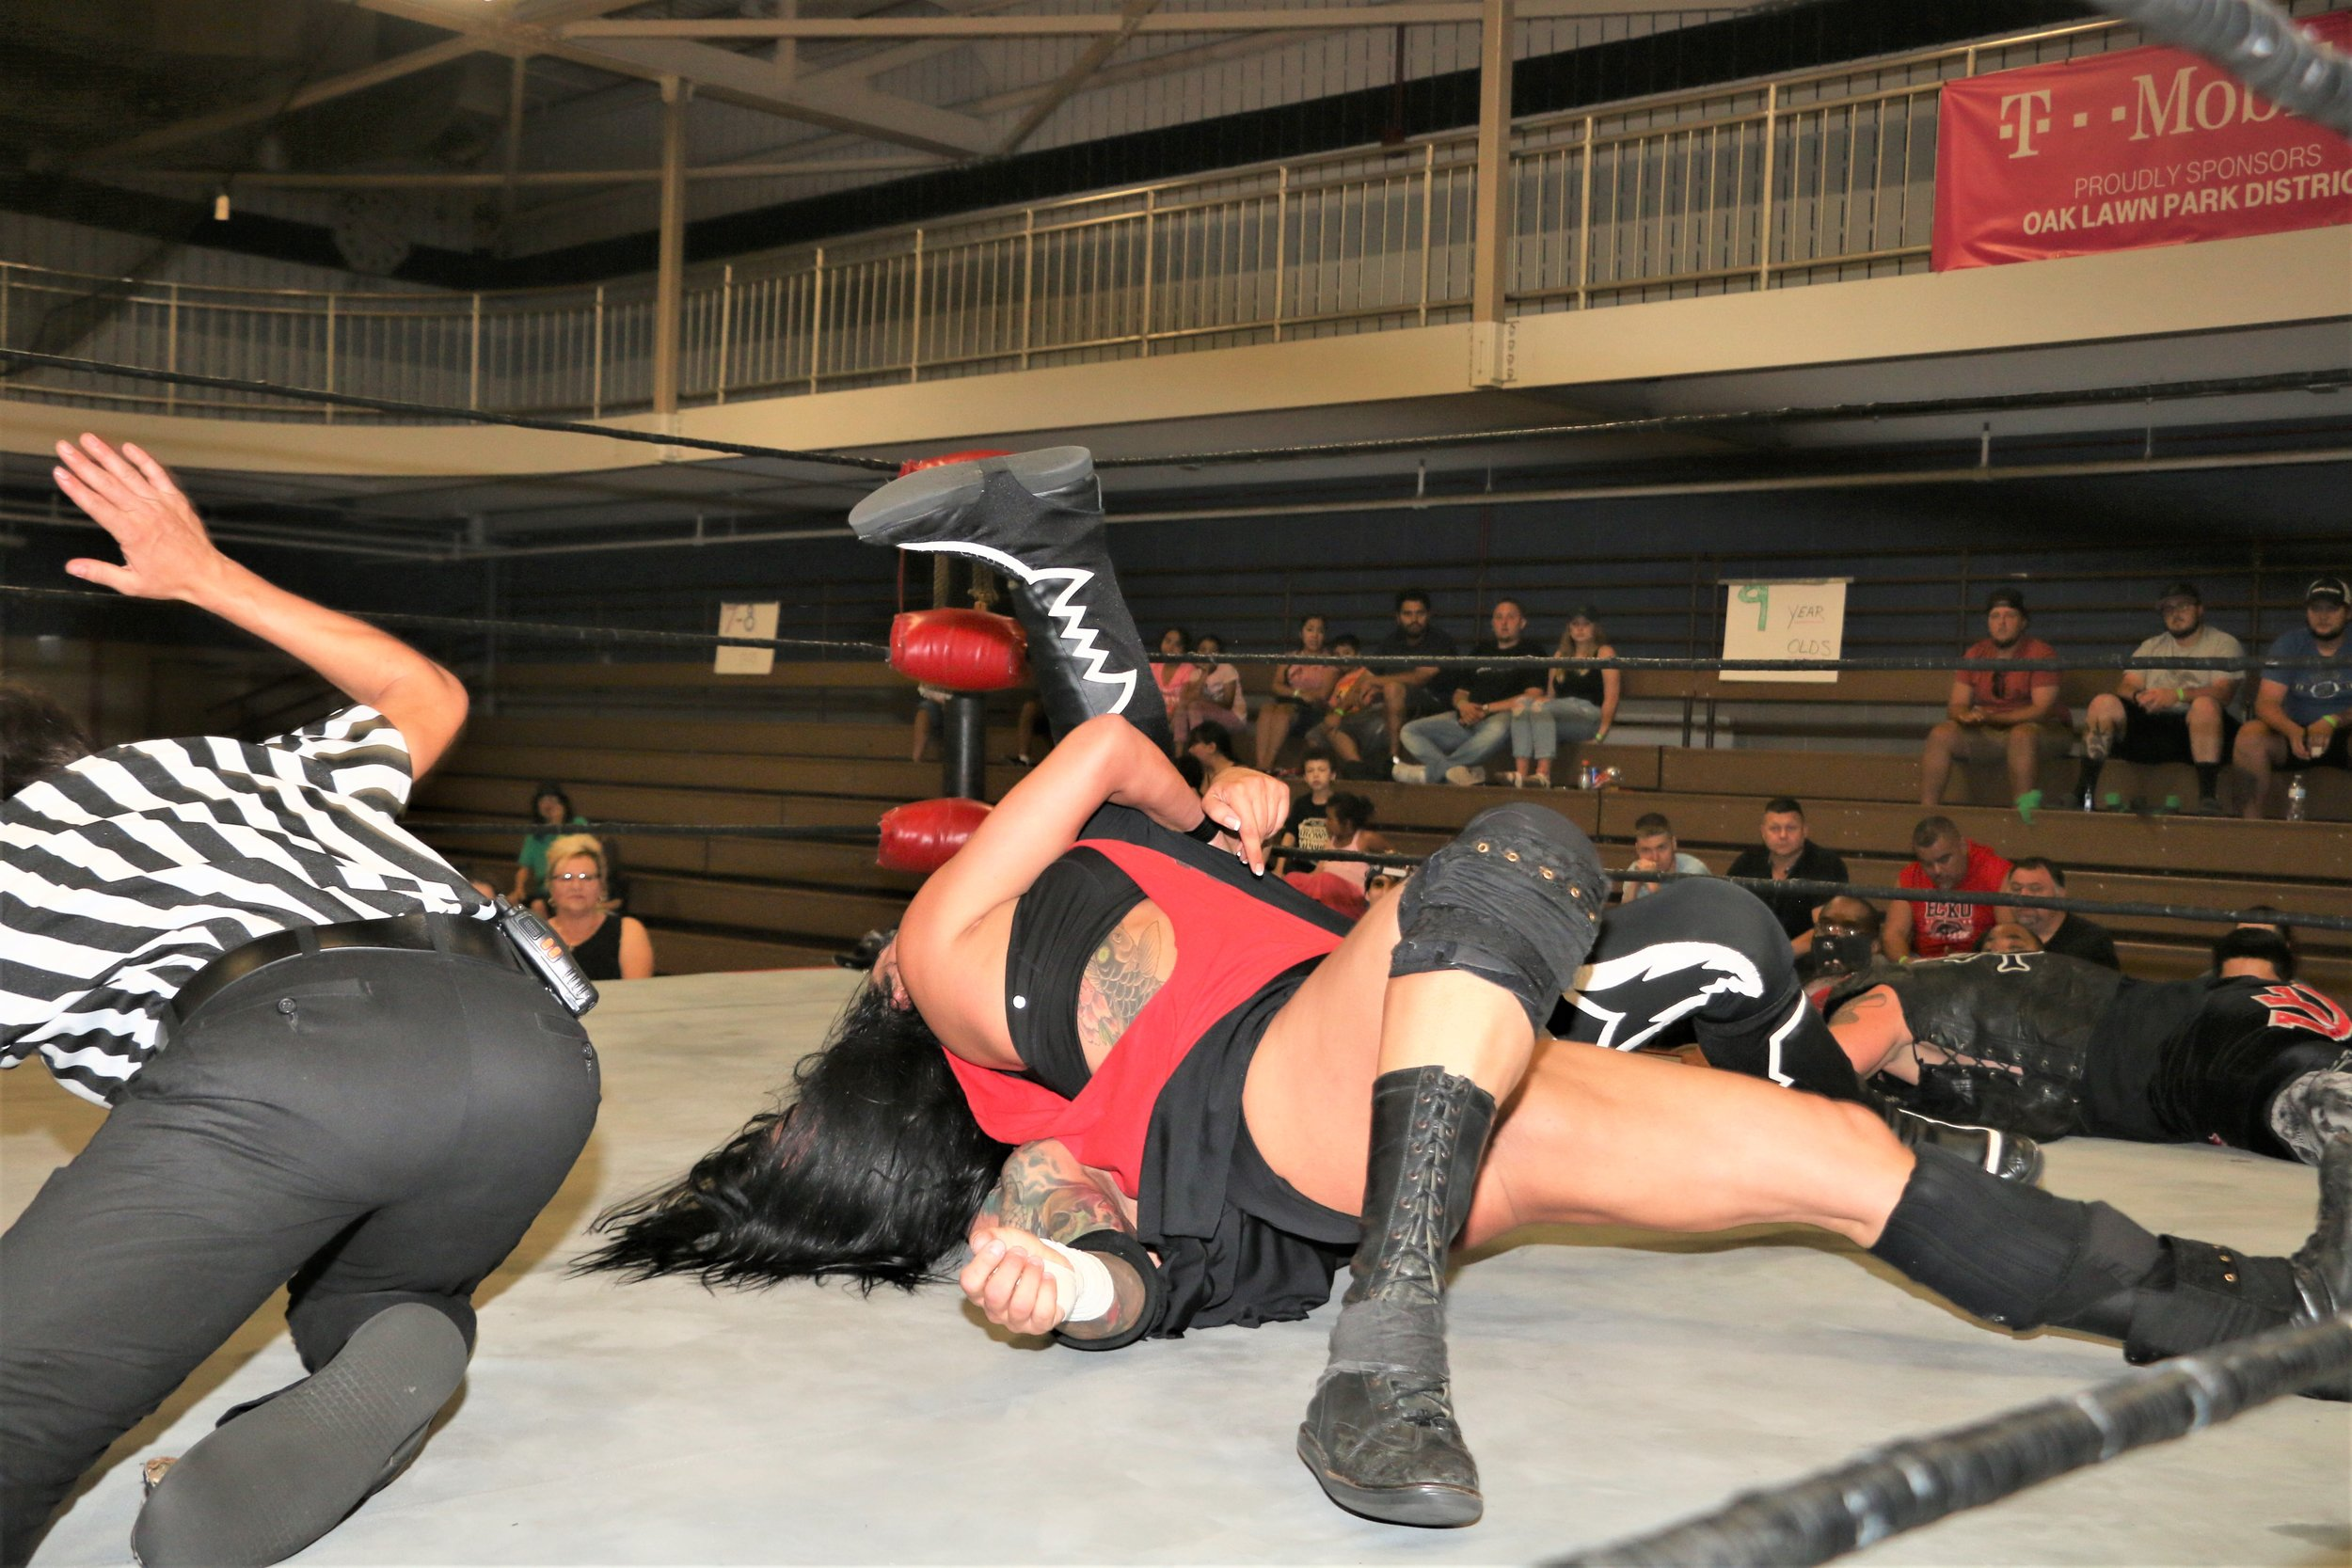 Melanie Cruise scores the pin on Vic Capri to win the 10-man elimination tag-team match.